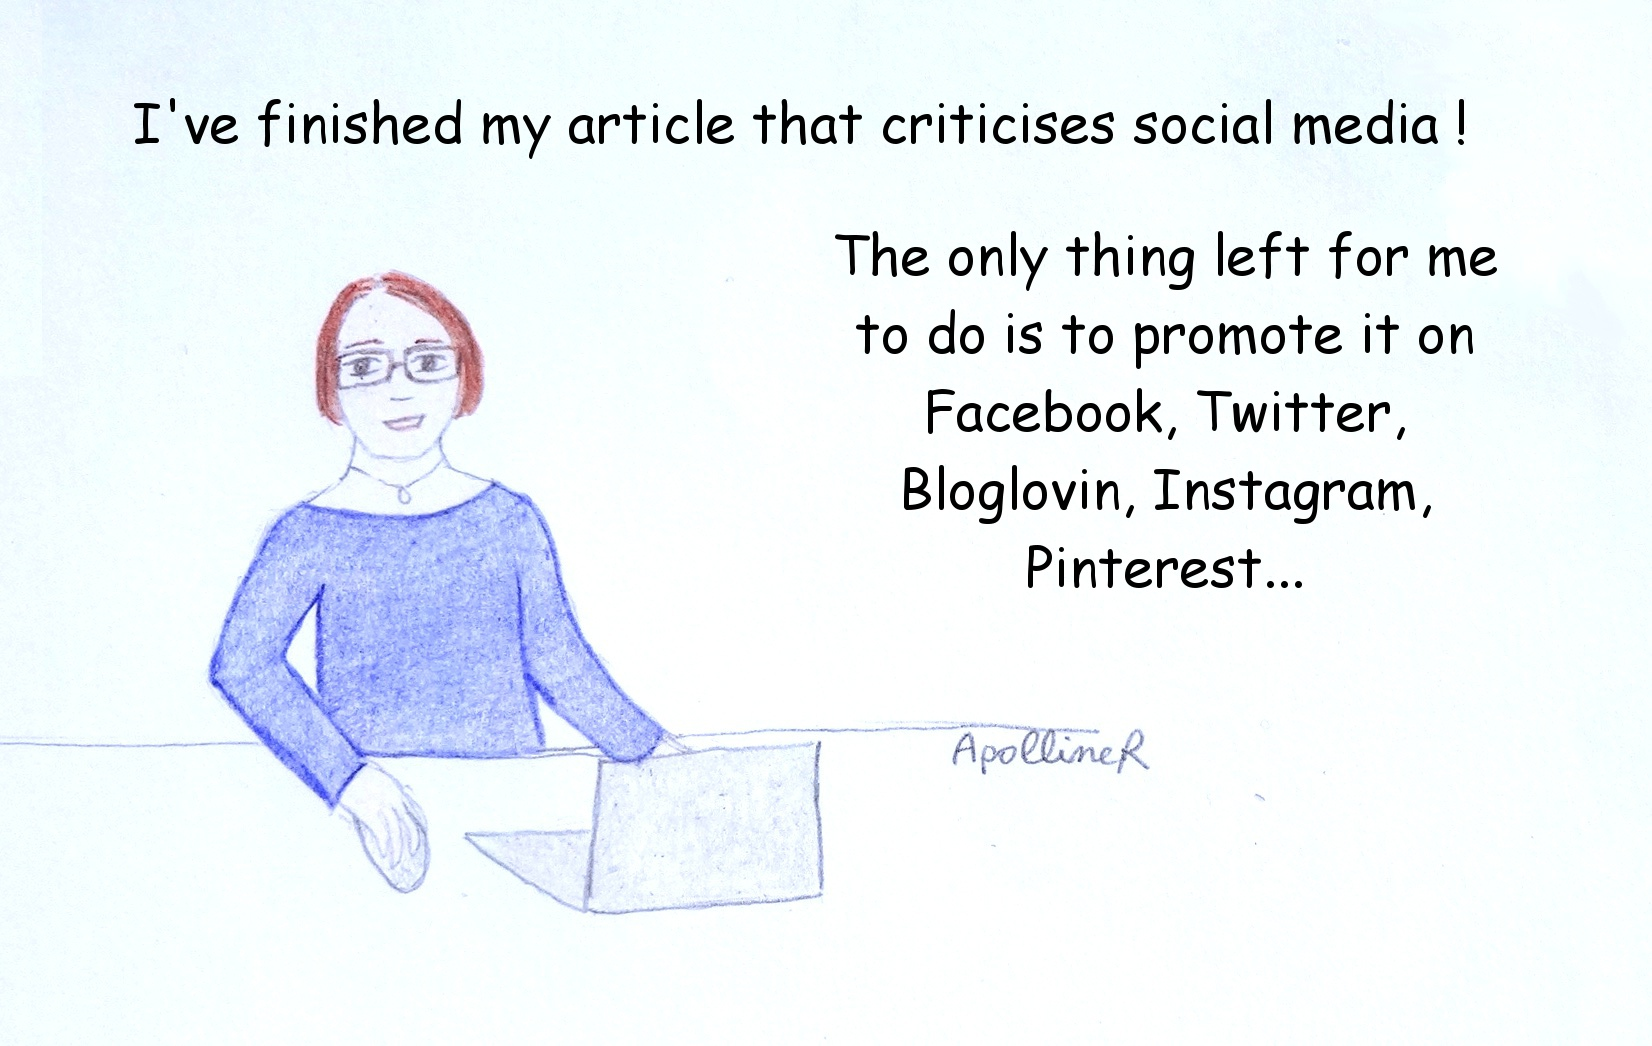 drawing: I've finished my article that criticises social media! The only thing left for me to do is to promote it on Facebook, Twitter, Bloglovin, Instagram, Pinterest...